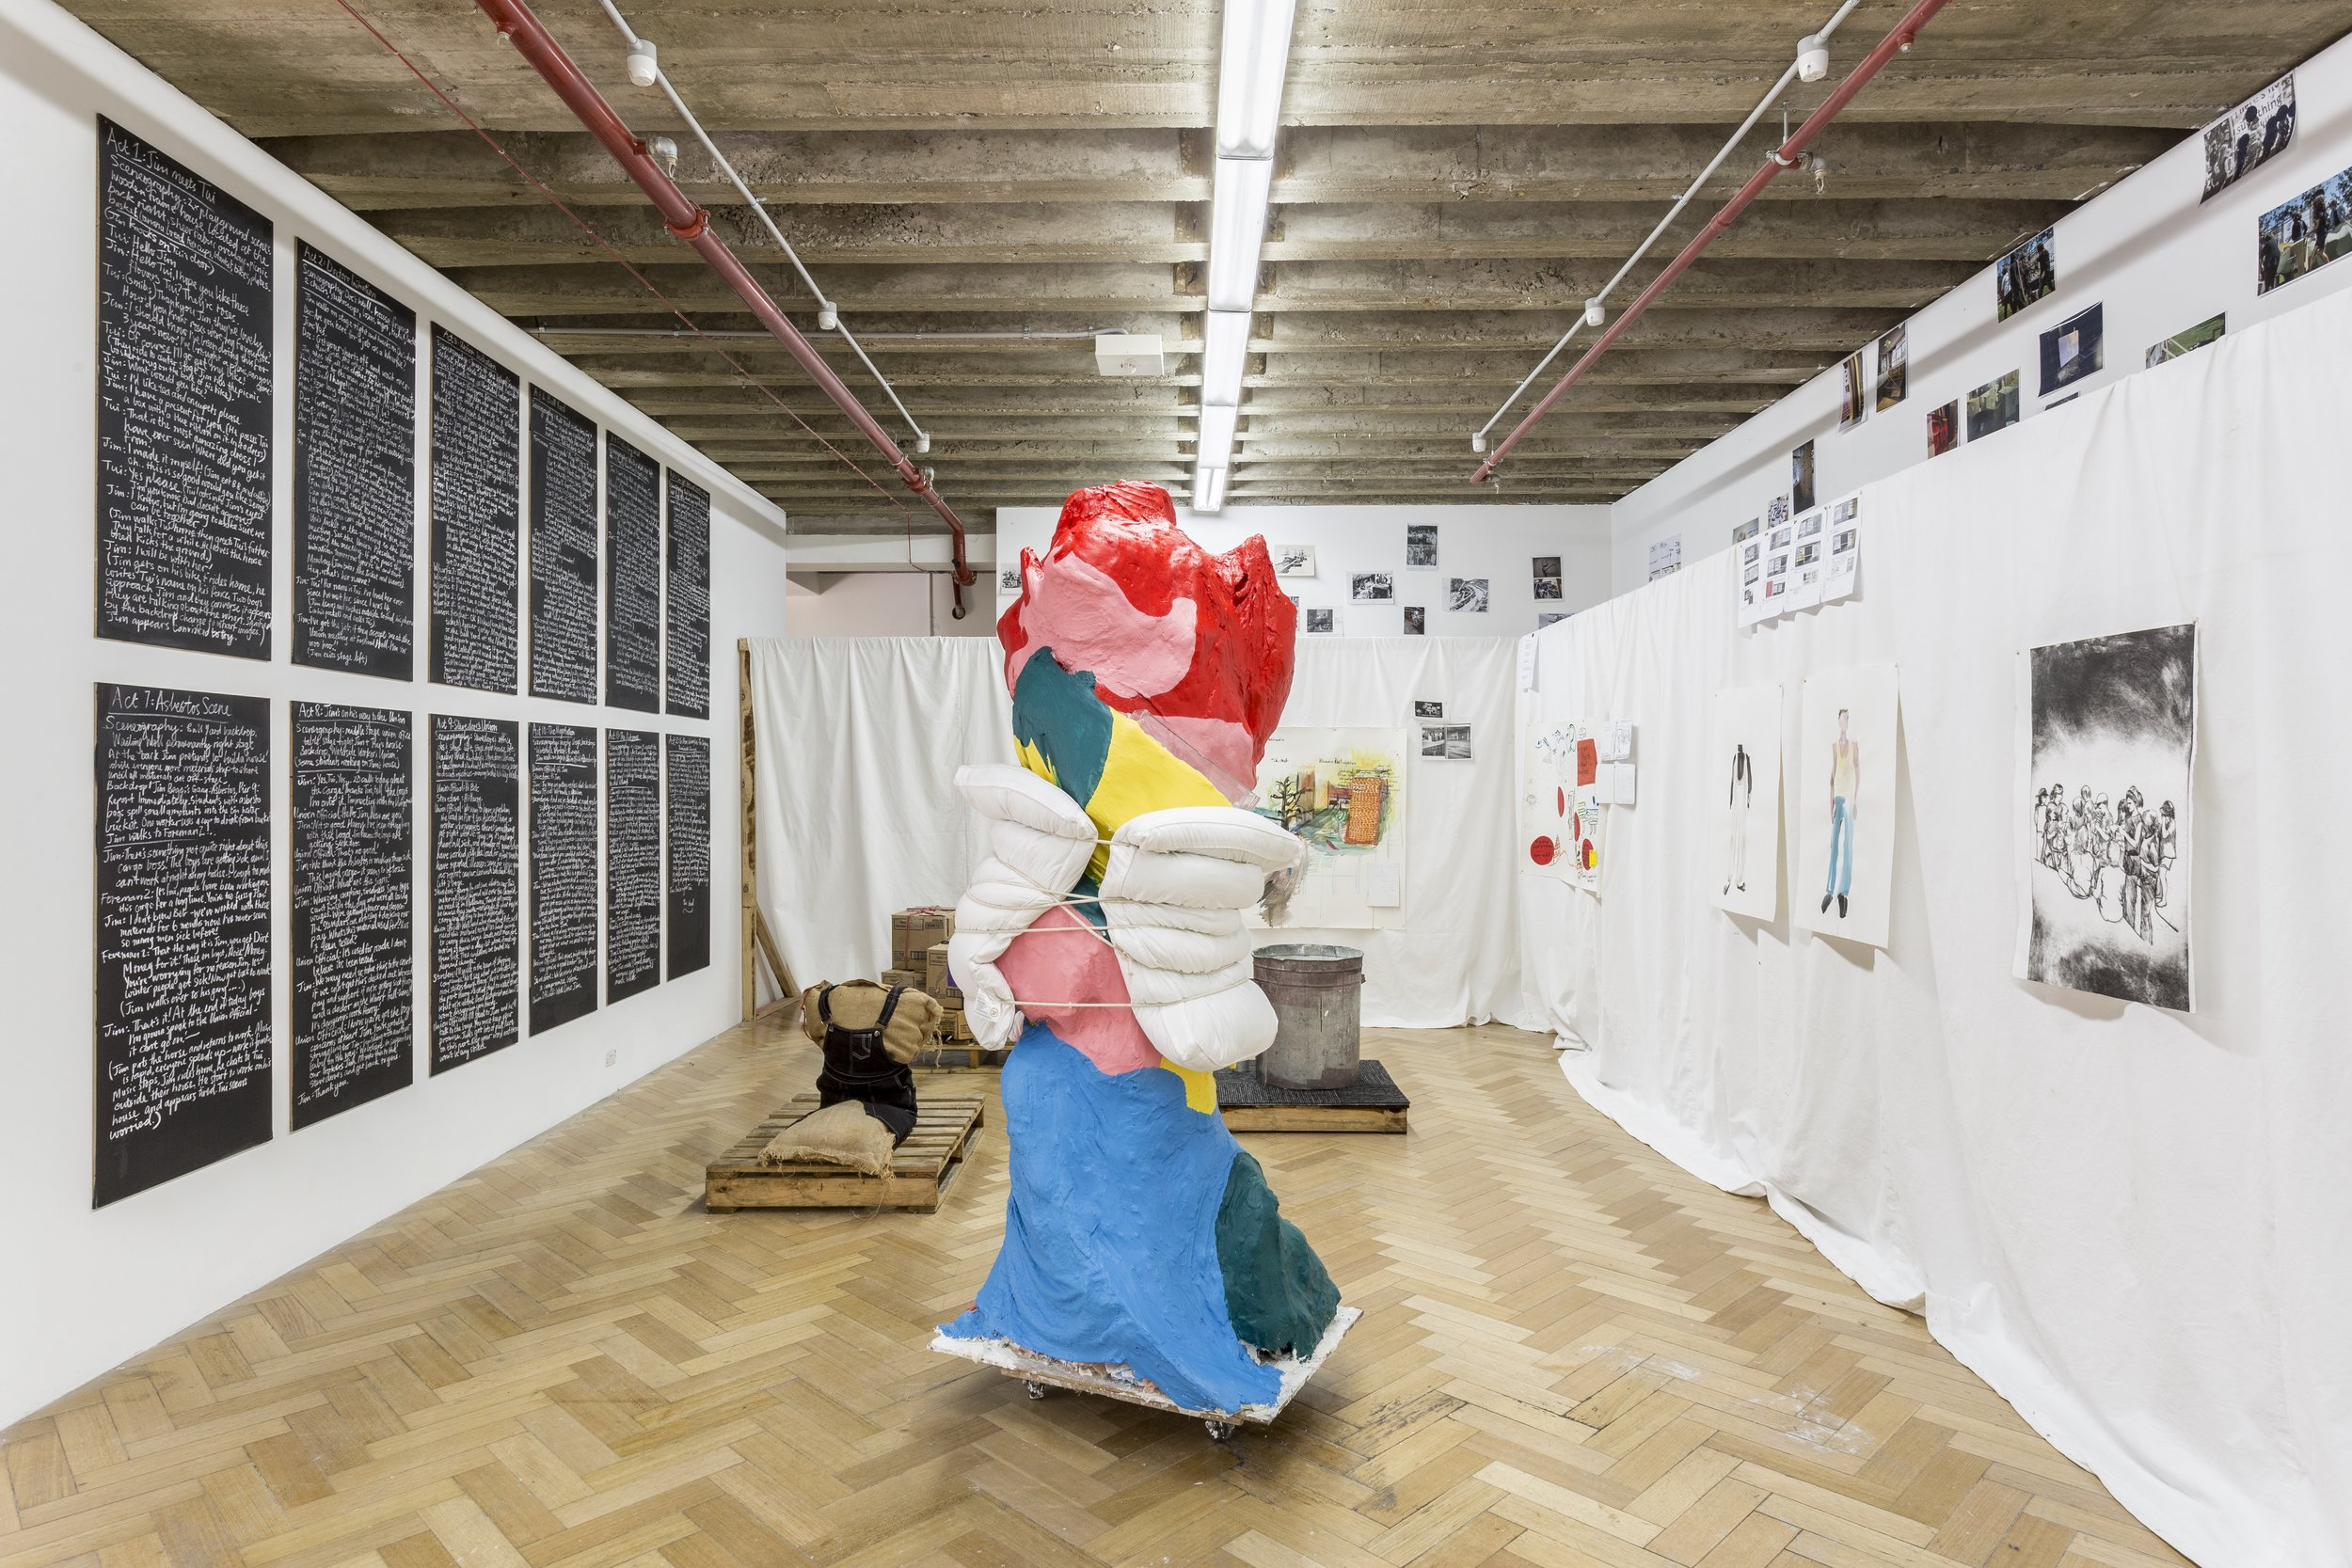 storyboard poetics and pedagogic process , 2017, installation view, mixed media, dimensions variable. Westspace Gallery. Image: Christo Crocker